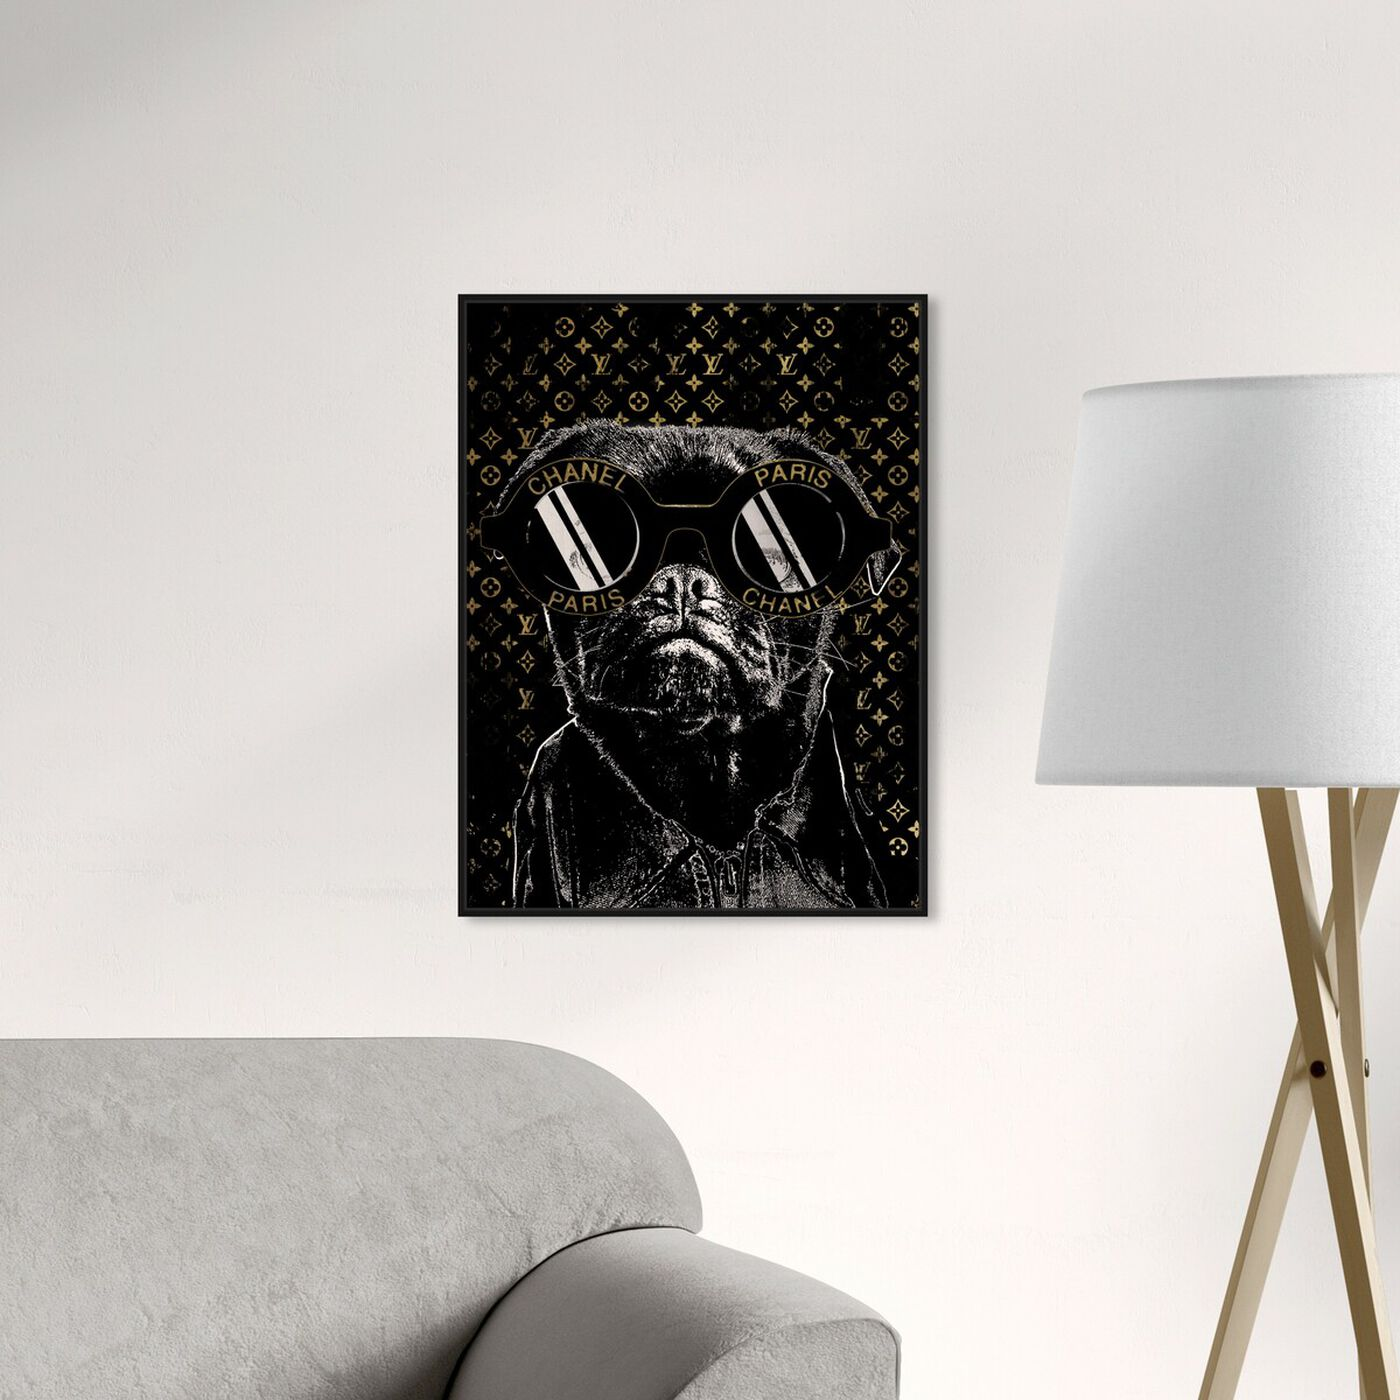 Hanging view of Fashion Noir Frenchie featuring fashion and glam and accessories art.